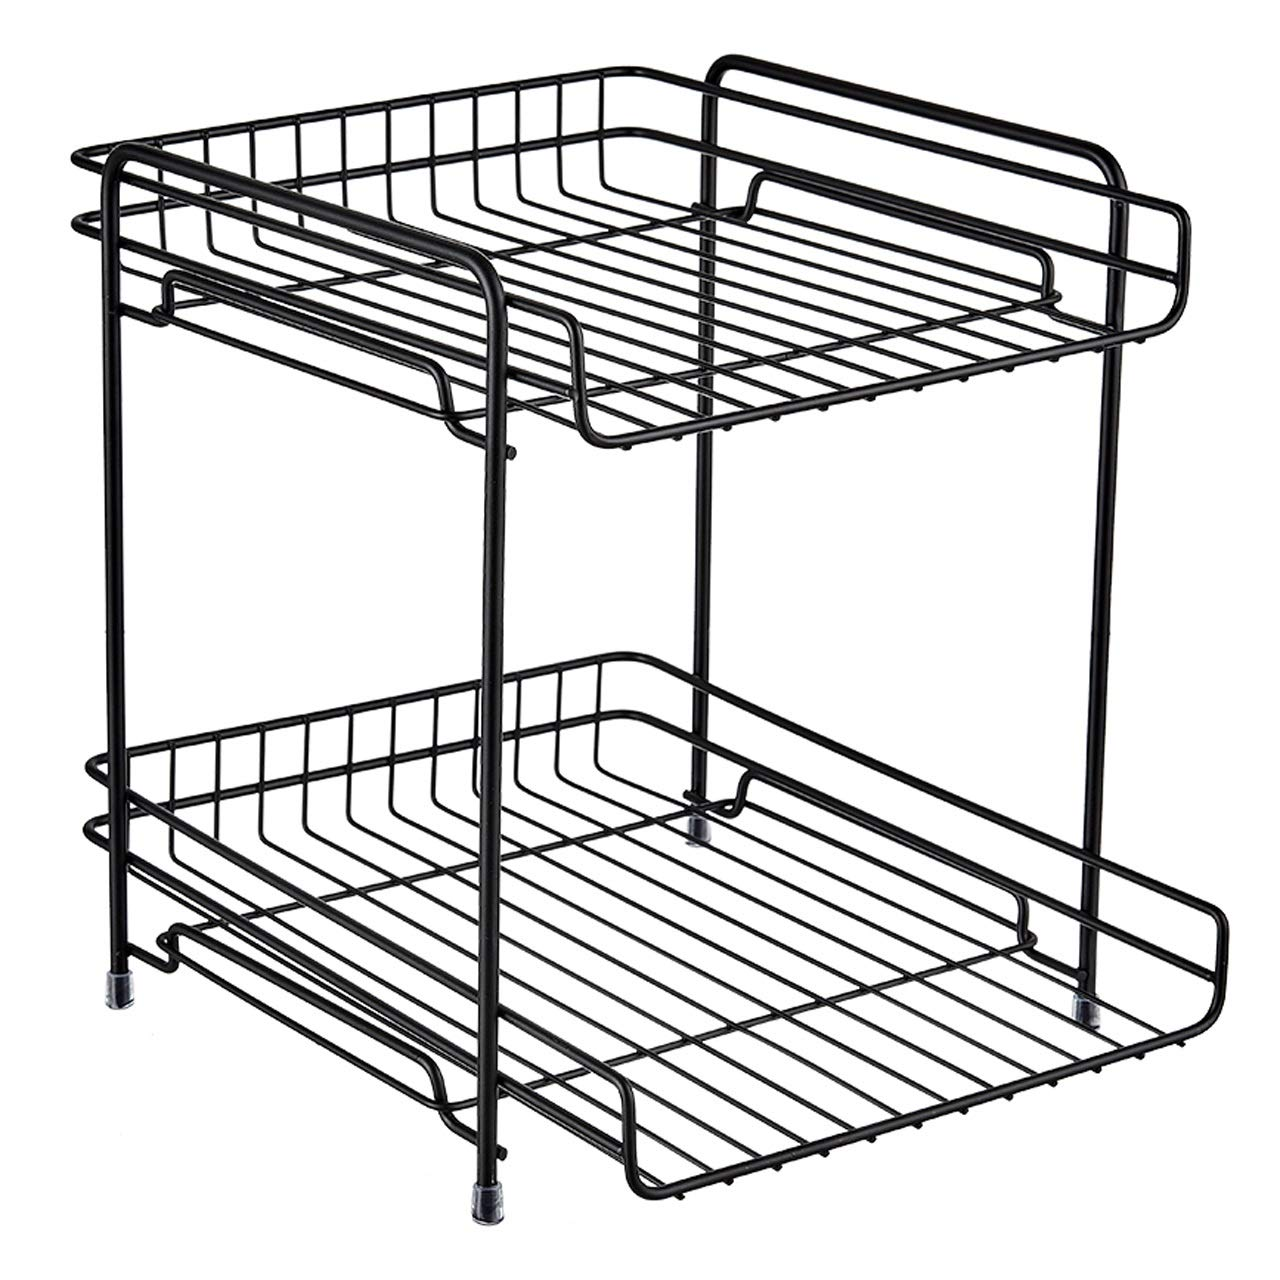 ASIERY Wrought Iron Cosmetics Storage Rack Kitchen Organizer Desk Storage Rack for Bathroom and Student Dormitory (Color : Black) by ASIERY